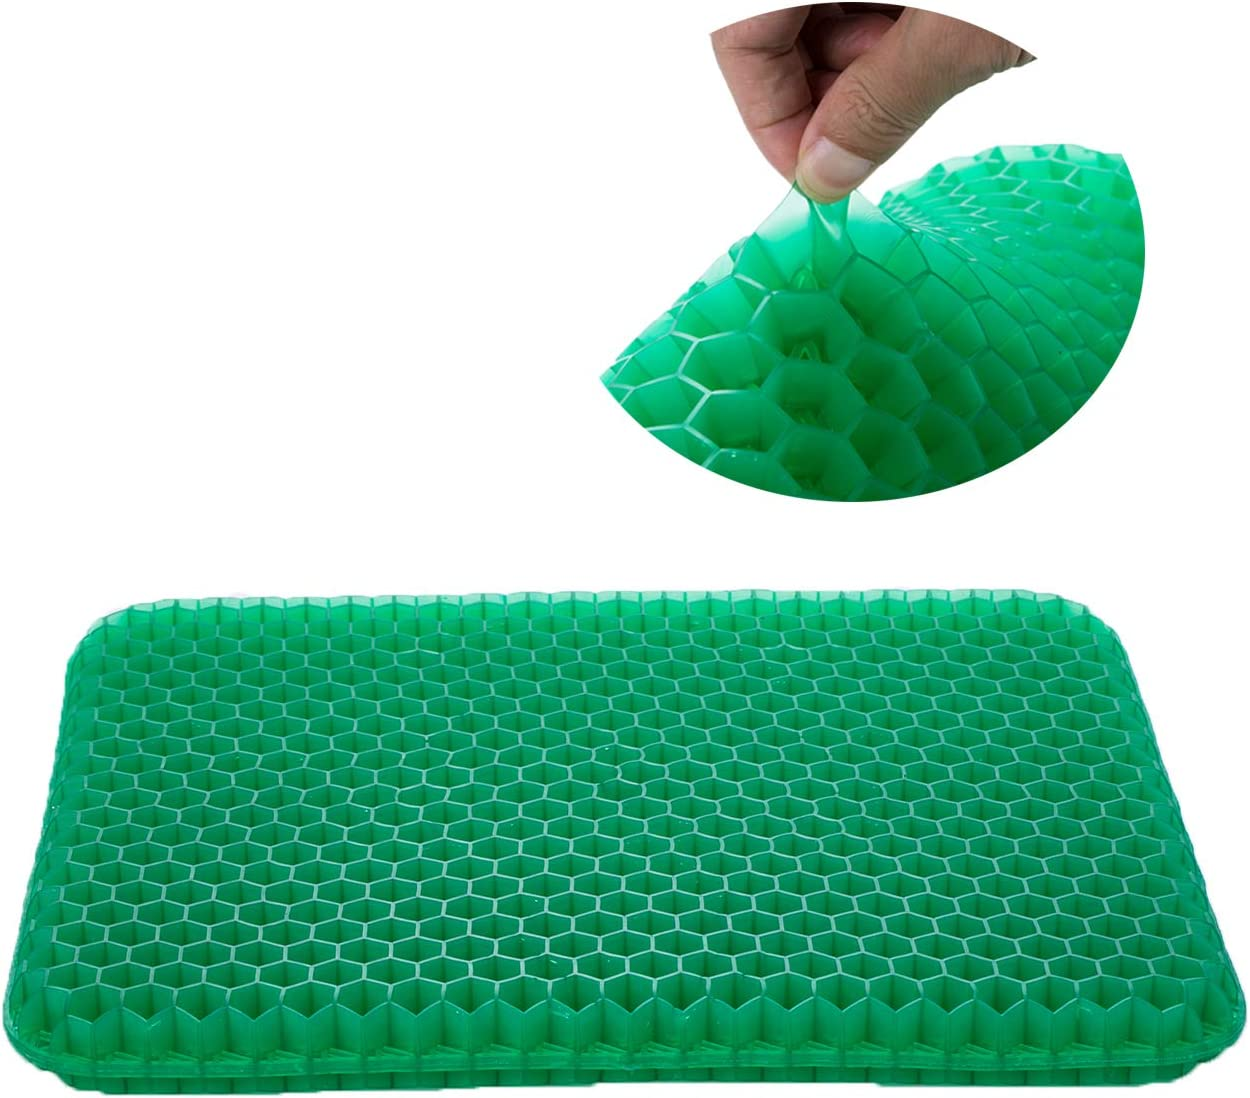 Gel Seat Cushion for Office Chair, Comfort Car Coccyx Cushion for Tailbone Pain Relief, Green Gel Cushion with Non Slip Cover for Car, Truck Driver, Wheelchair